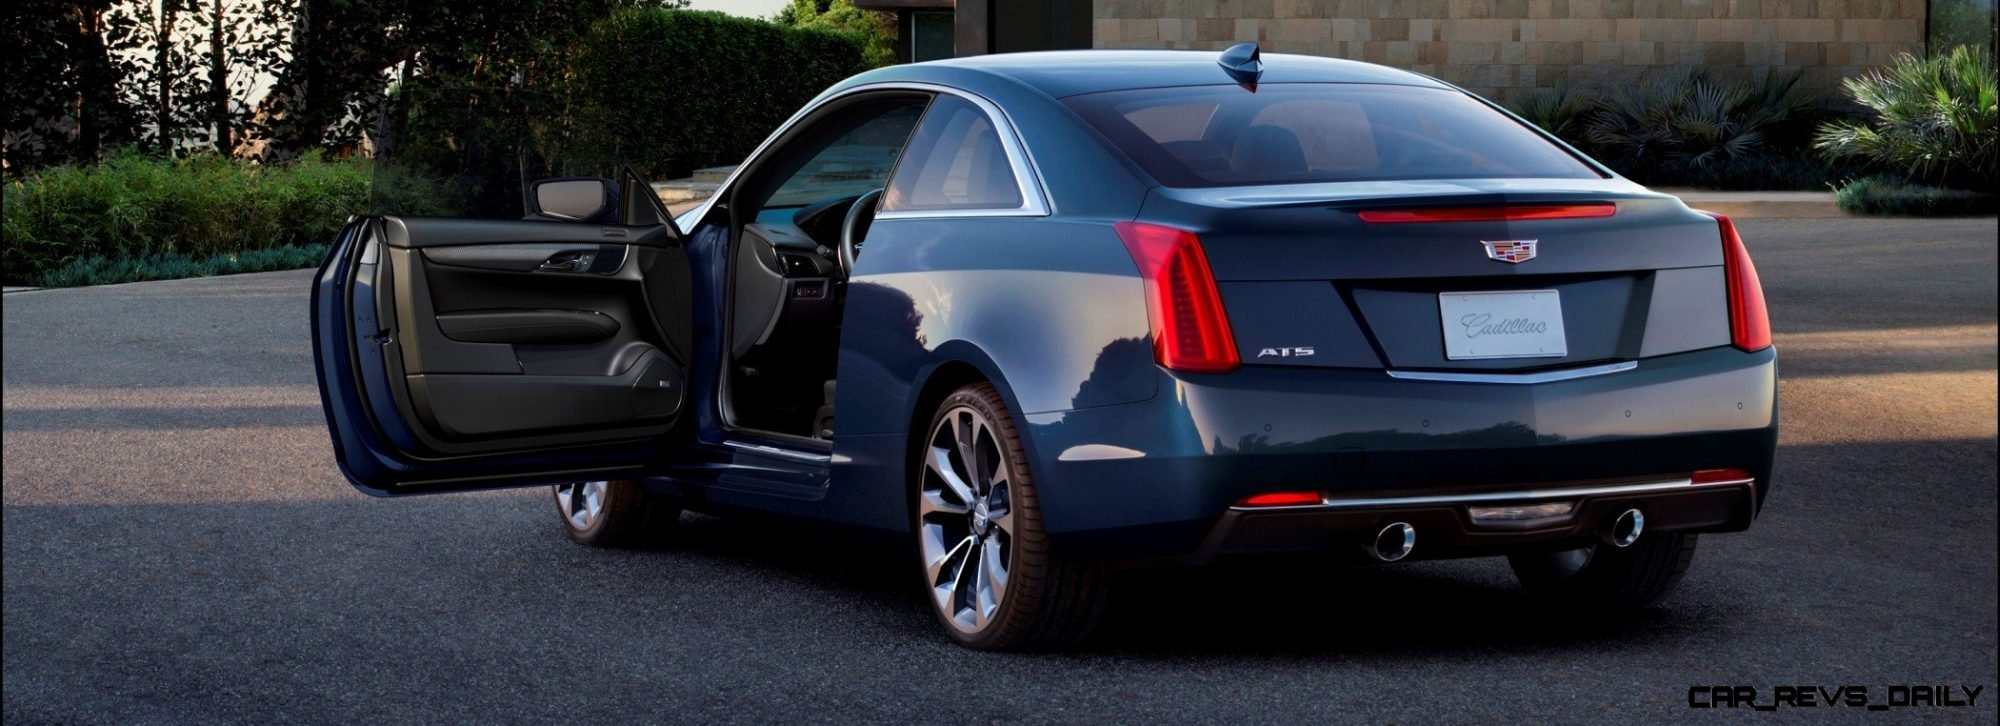 2015 Cadillac ATS Coupe Includes Overboost and 5 6s 0-60 Sprint   As